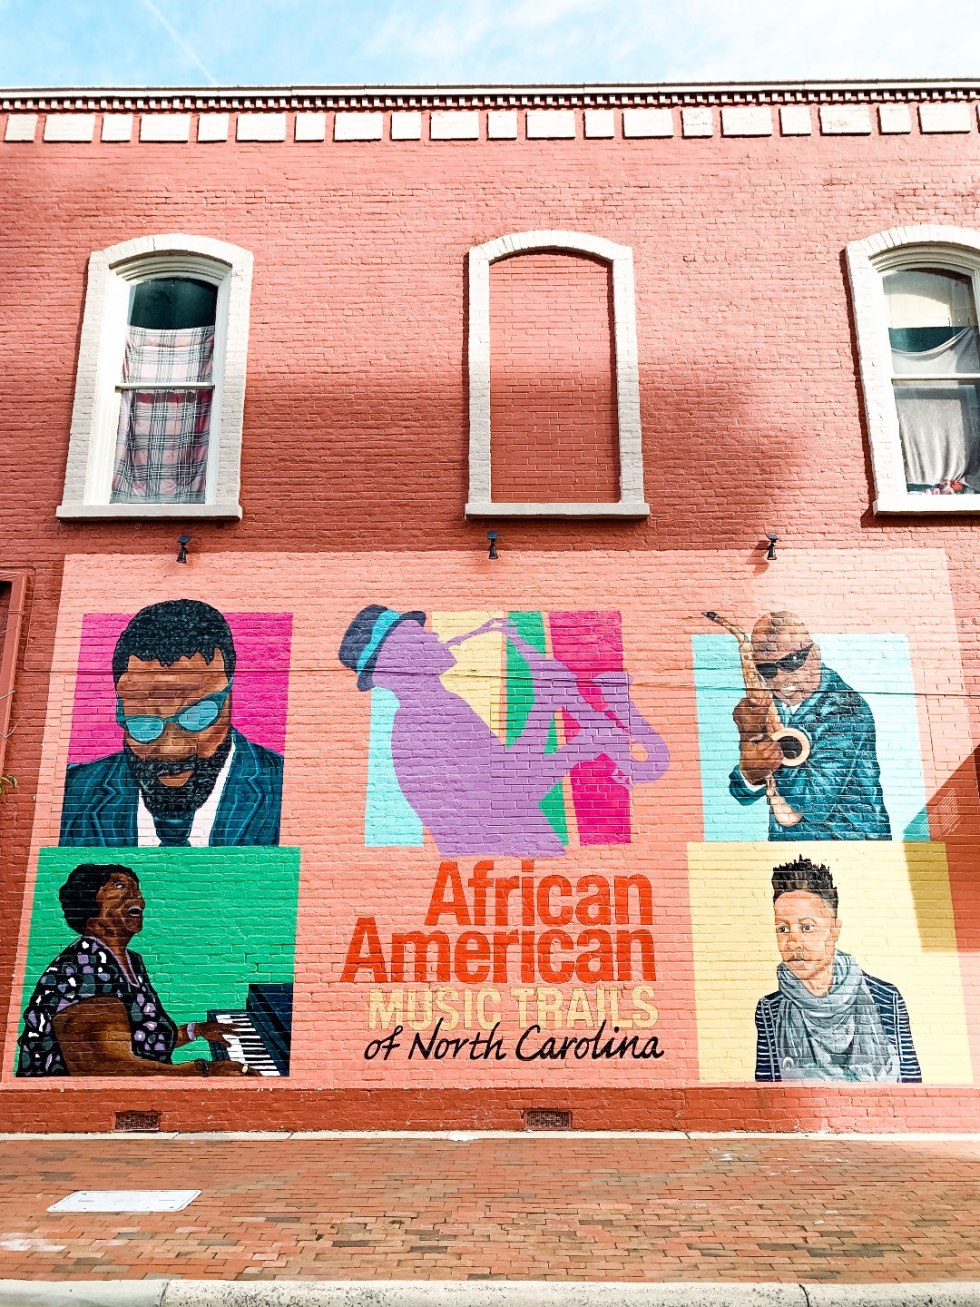 Eastern North Carolina Travel Guide: Top 10 Things to Do in Goldsboro NC by popular North Carolina blog, I'm Fixin' To: image of a African American wall mural.